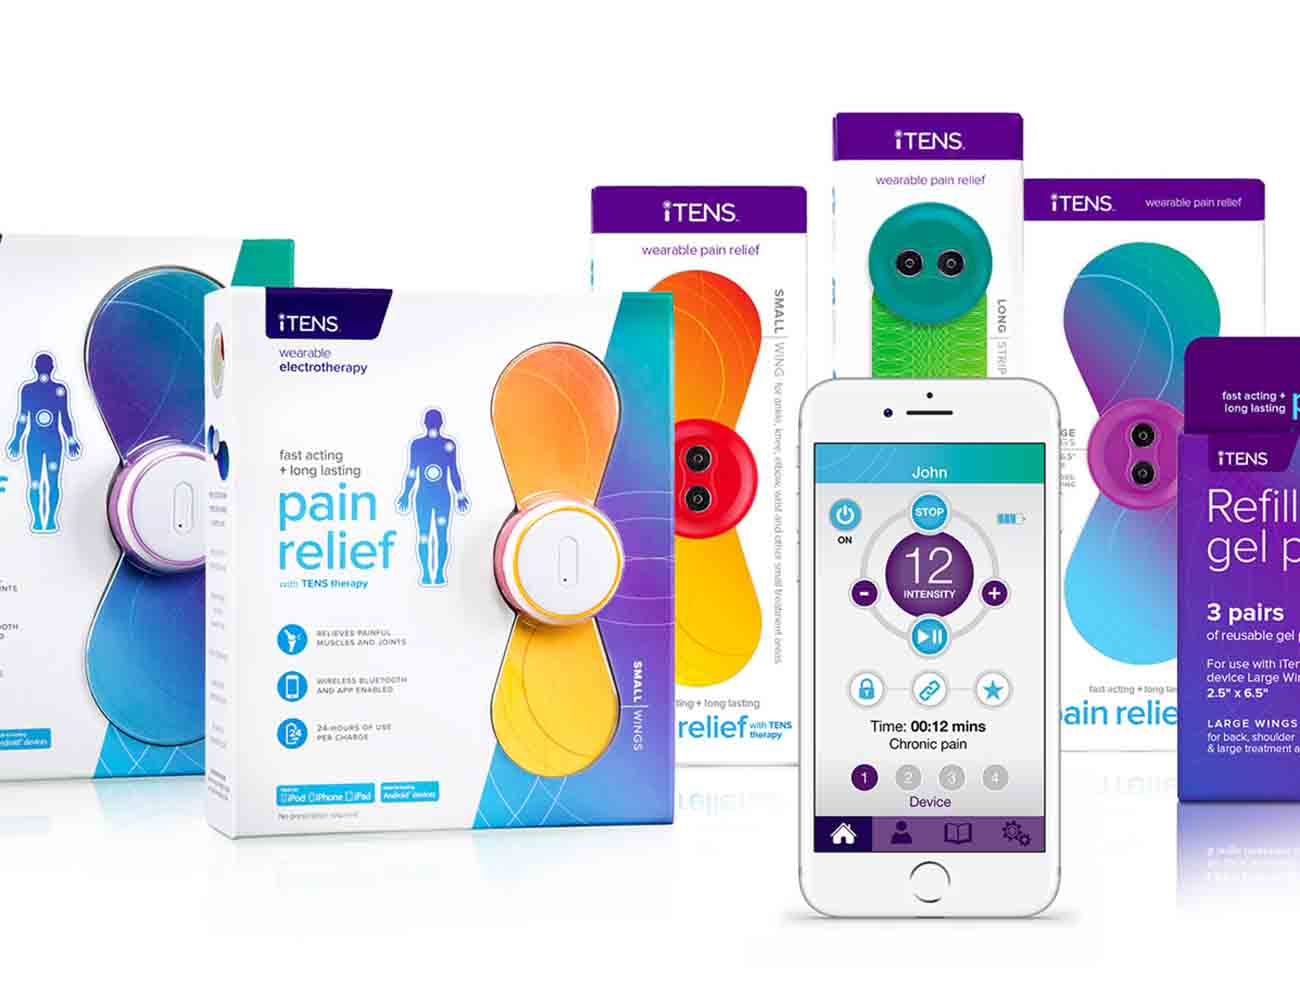 iTENS – The World's First Wearable TENS Device